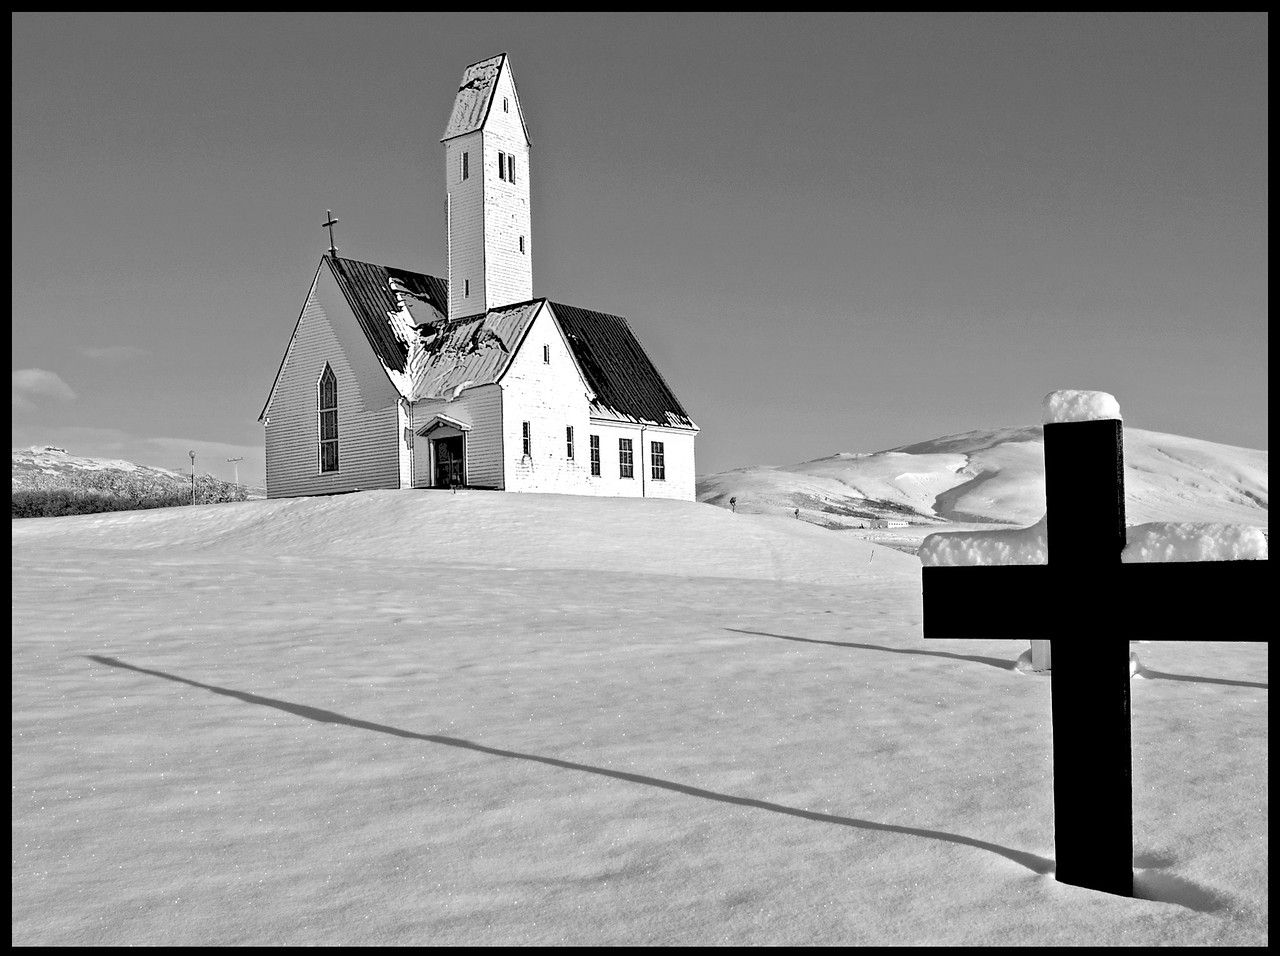 Icelandic Cemetery with a church in the background